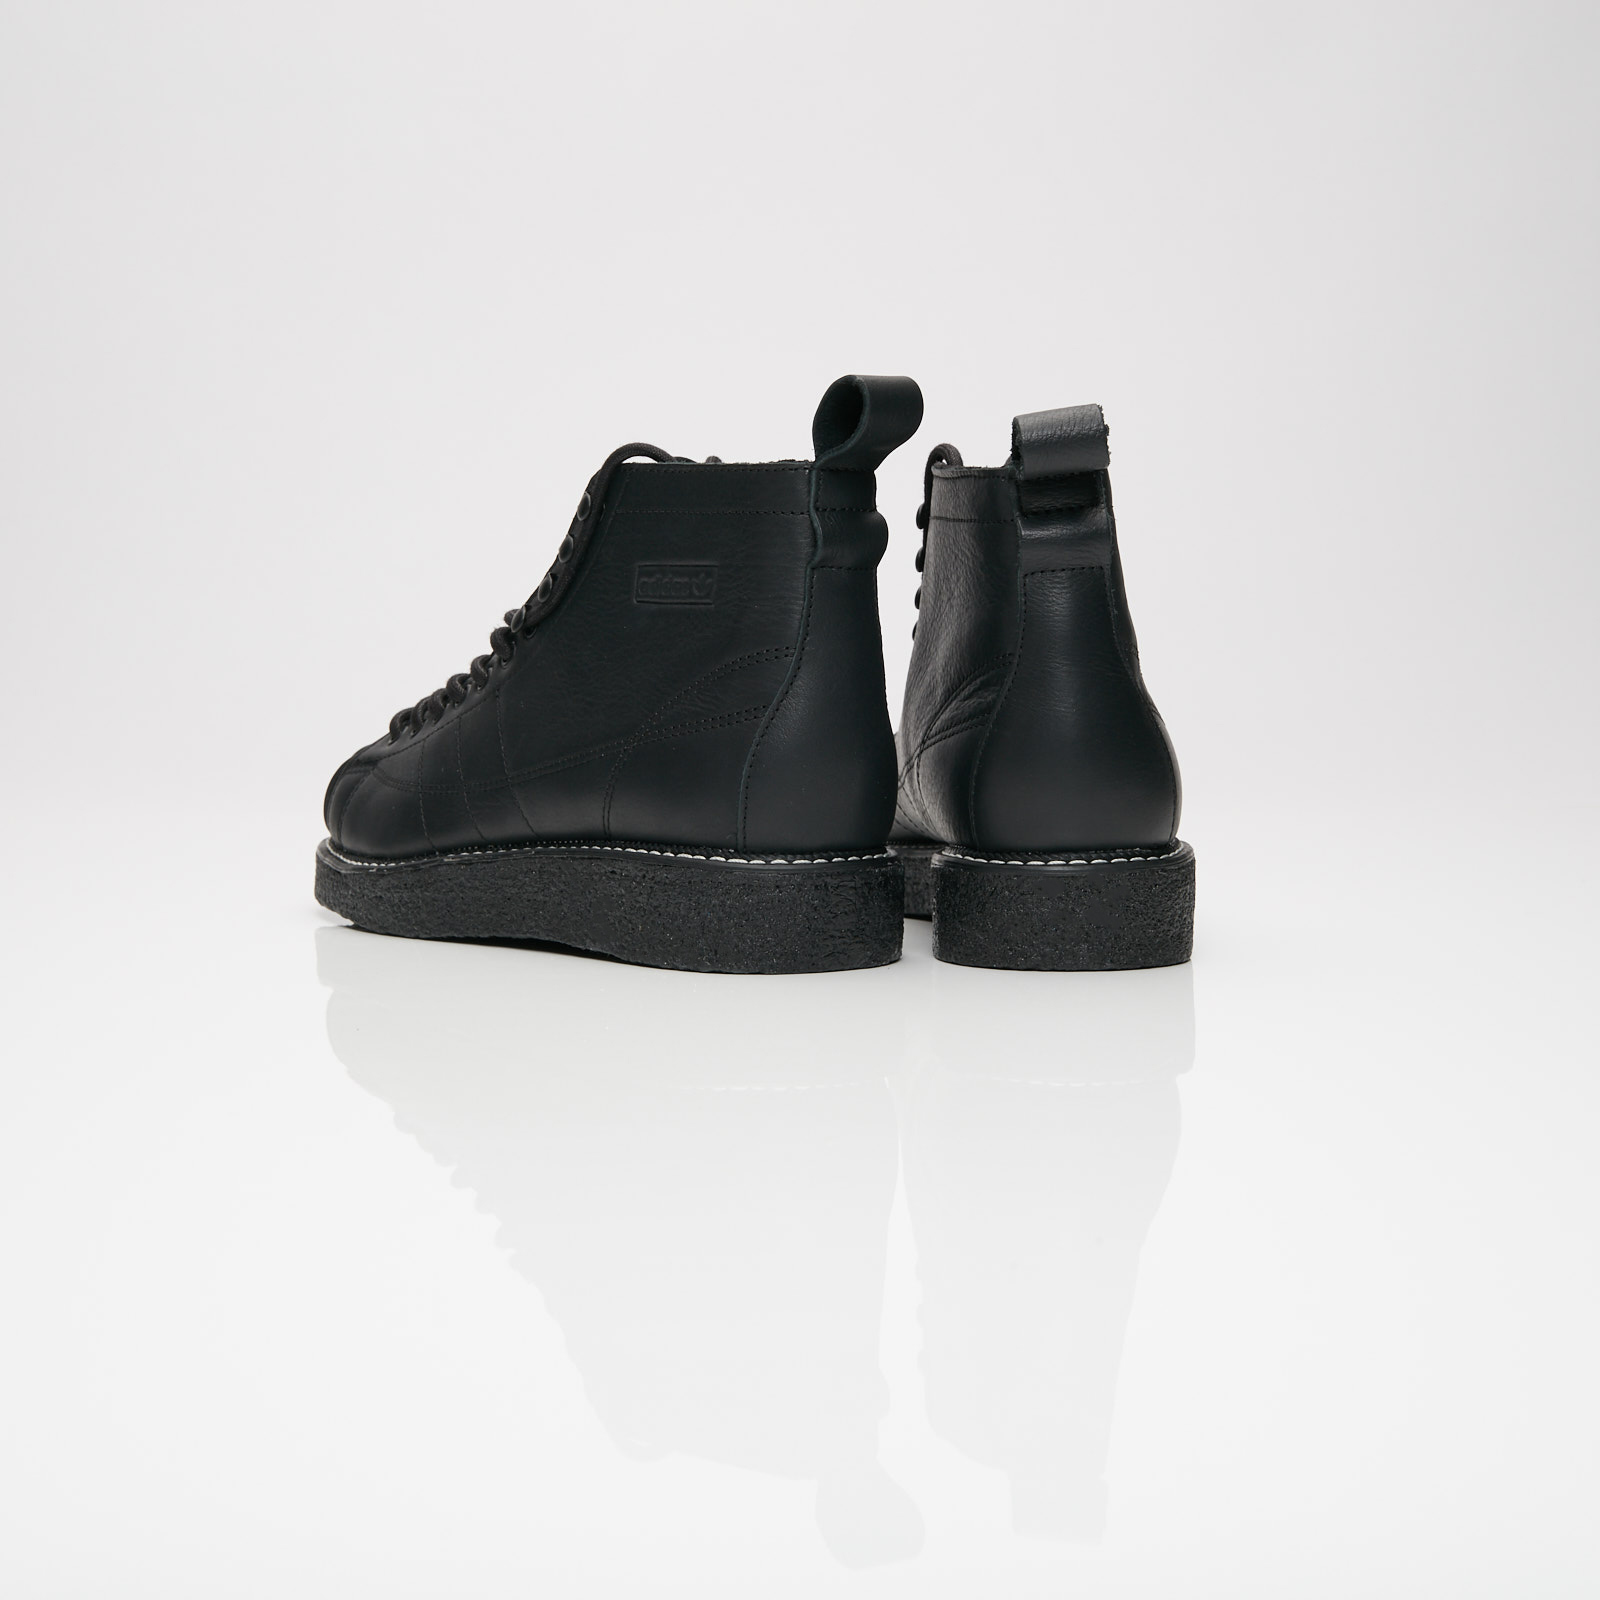 outlet store 34e6a 6aac6 adidas Superstar Boot Luxe W - Aq1250 - Sneakersnstuff   sneakers    streetwear online since 1999